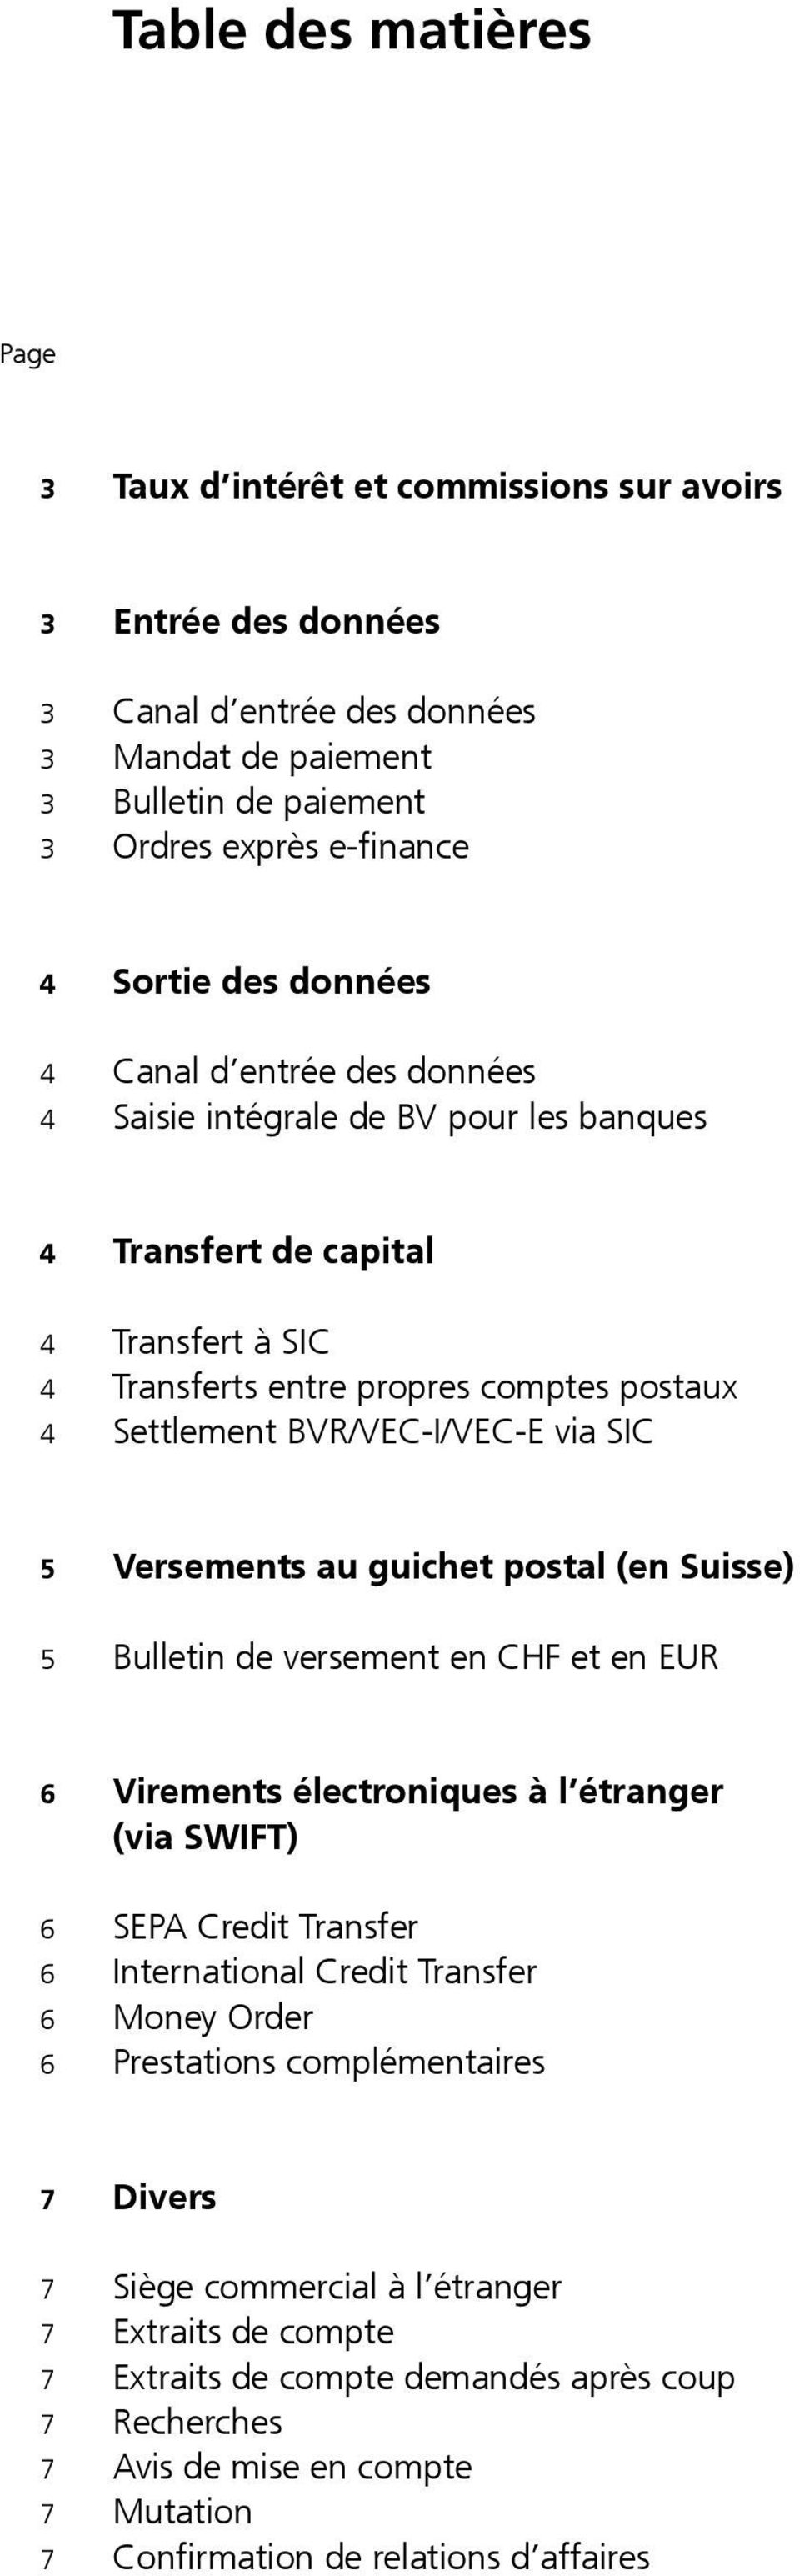 5 Versements au guichet postal (en Suisse) 5 Bulletin de versement en CHF et en EUR 6 Virements électroniques à l étranger (via SWIFT) 6 SEPA Credit Transfer 6 International Credit Transfer 6 Money